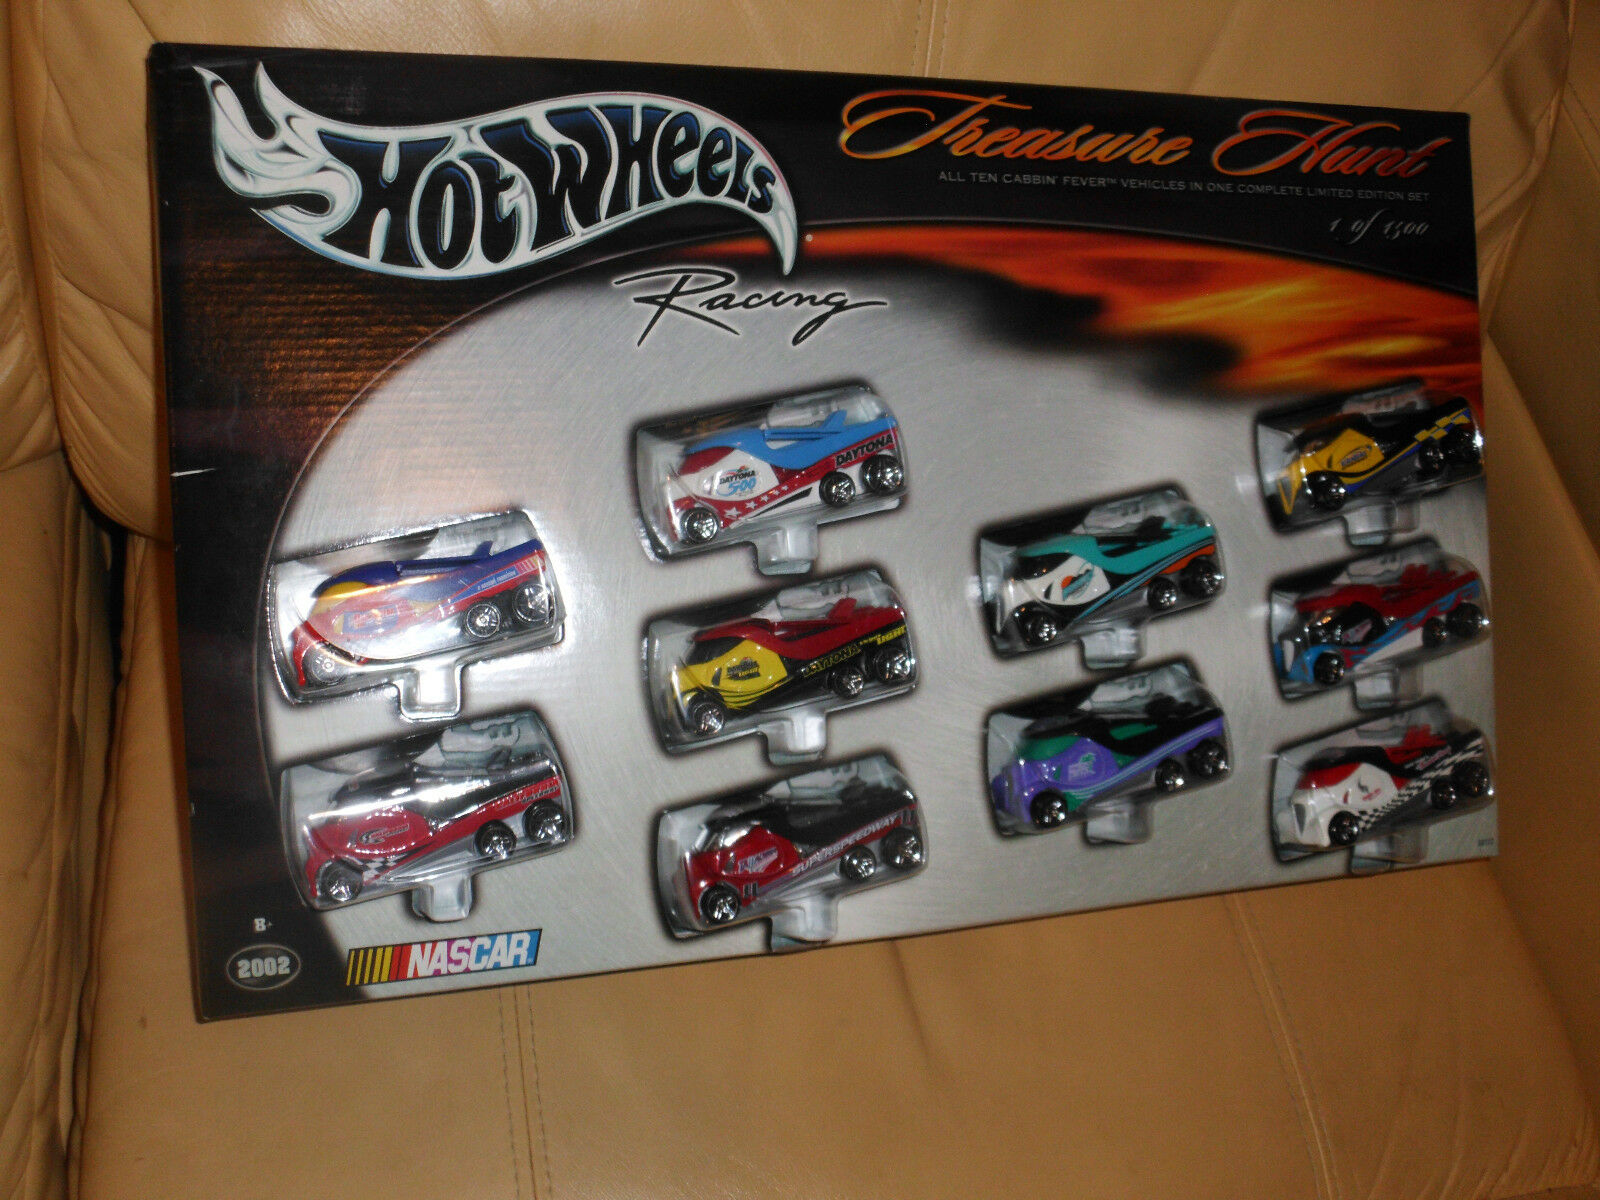 Edición LIMITADA HOT WHEELS RACING Treasure Hunt Cabbin 'fiebre 10 Car Set 1/1500